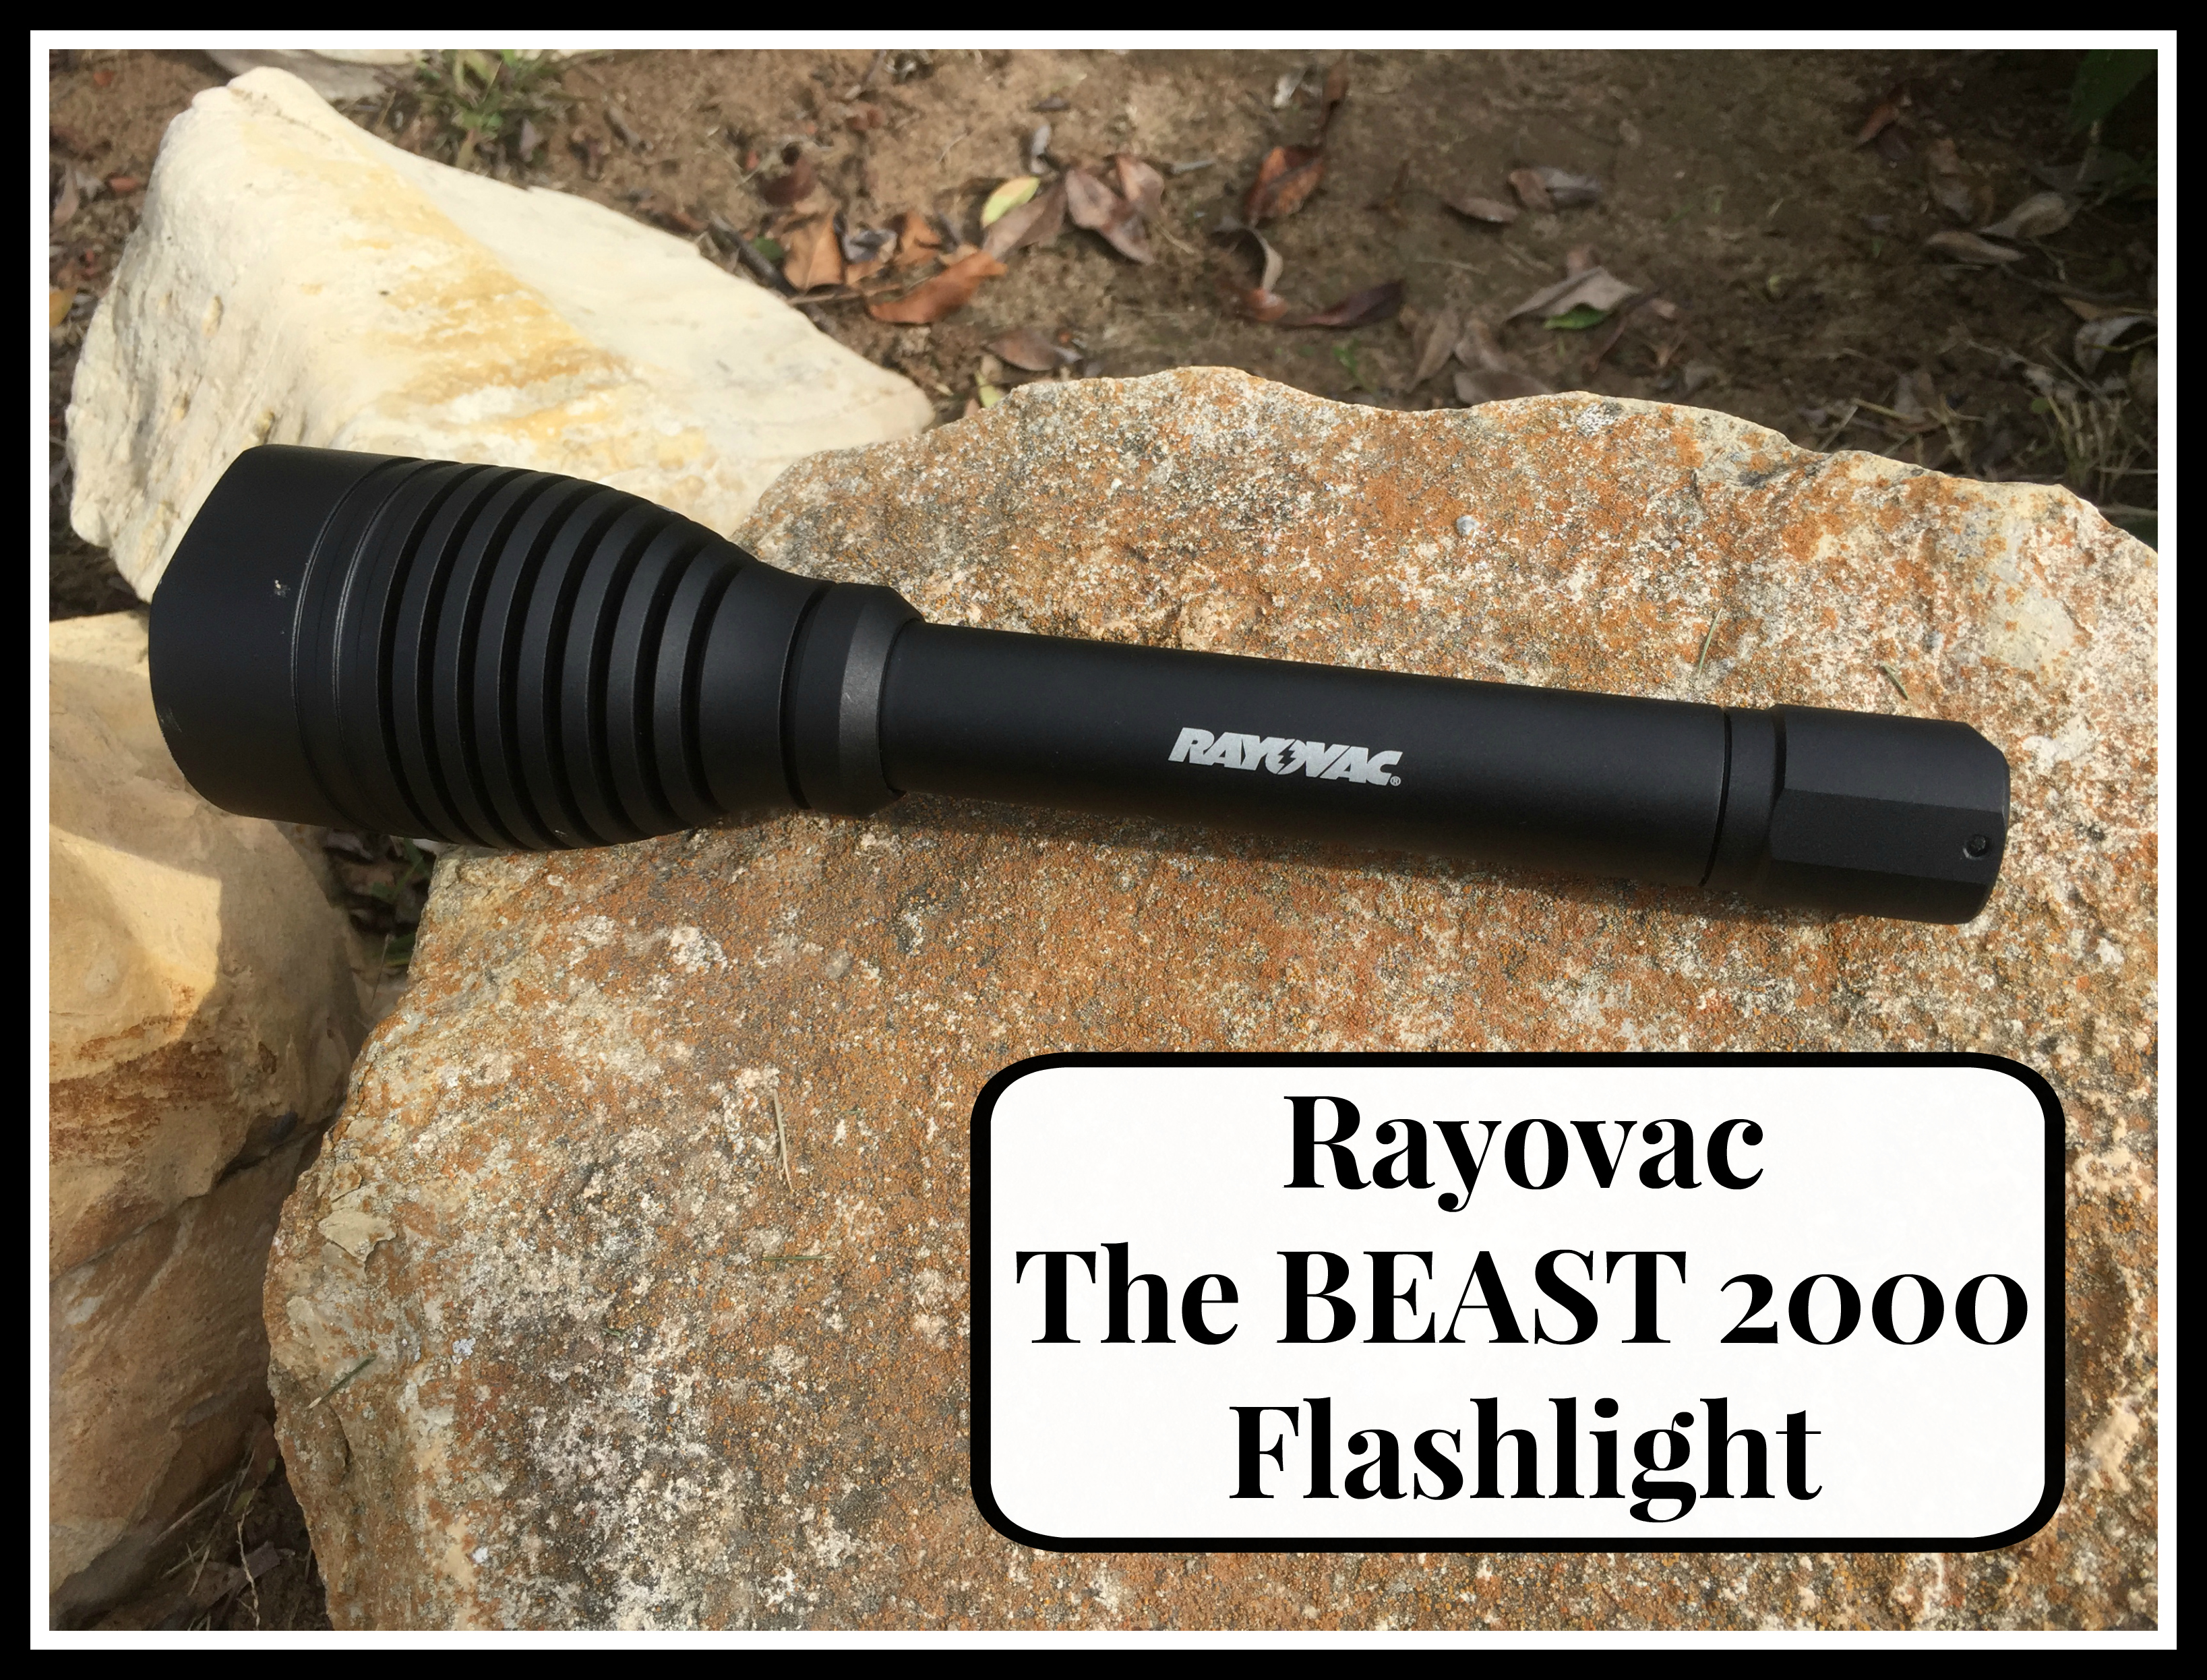 #Rayovac #Flashlight #BEAST2000 #ad